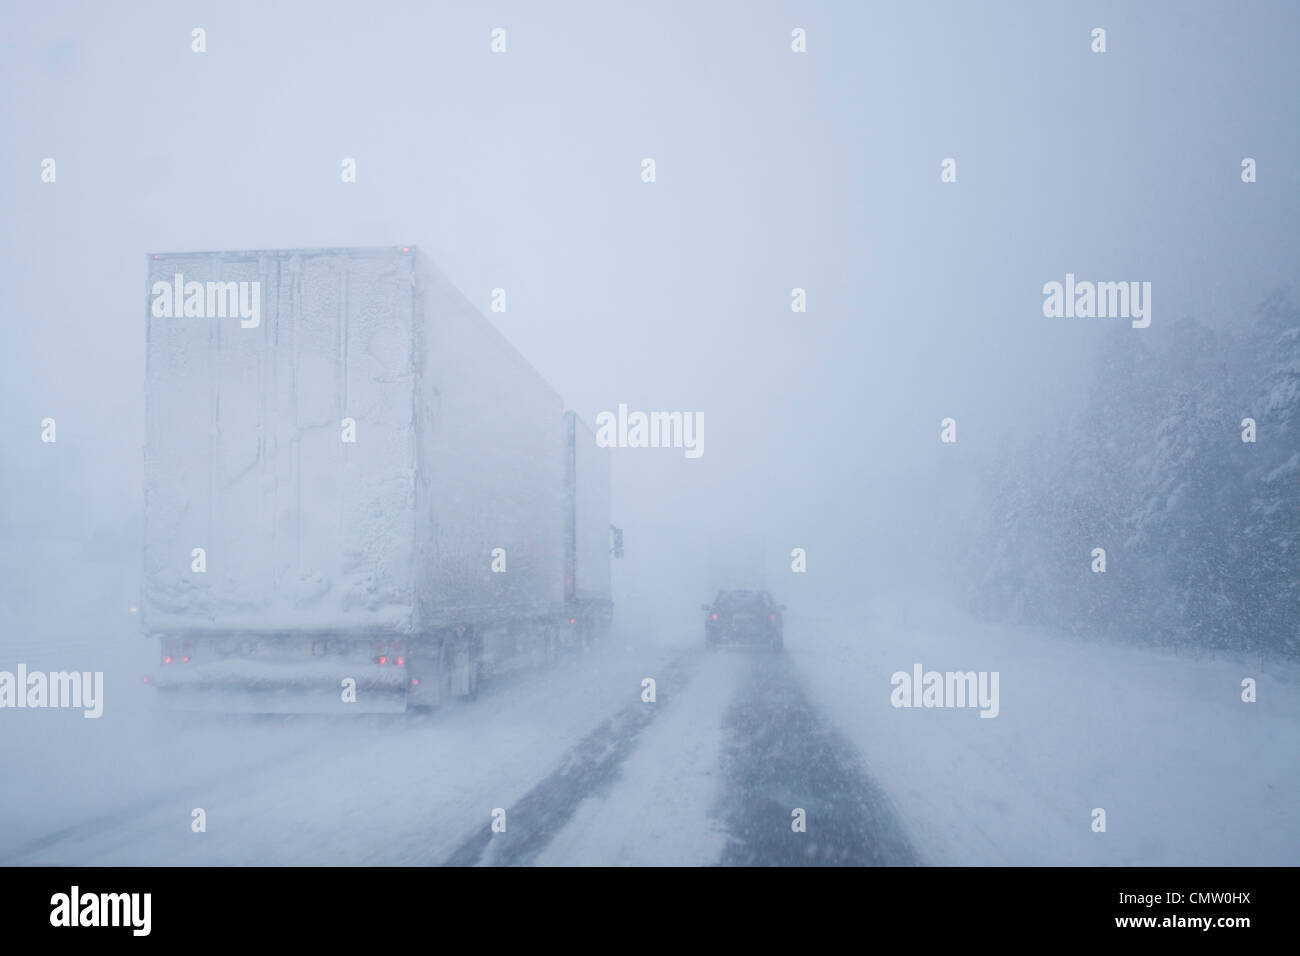 Traffic in snow storm - Stock Image